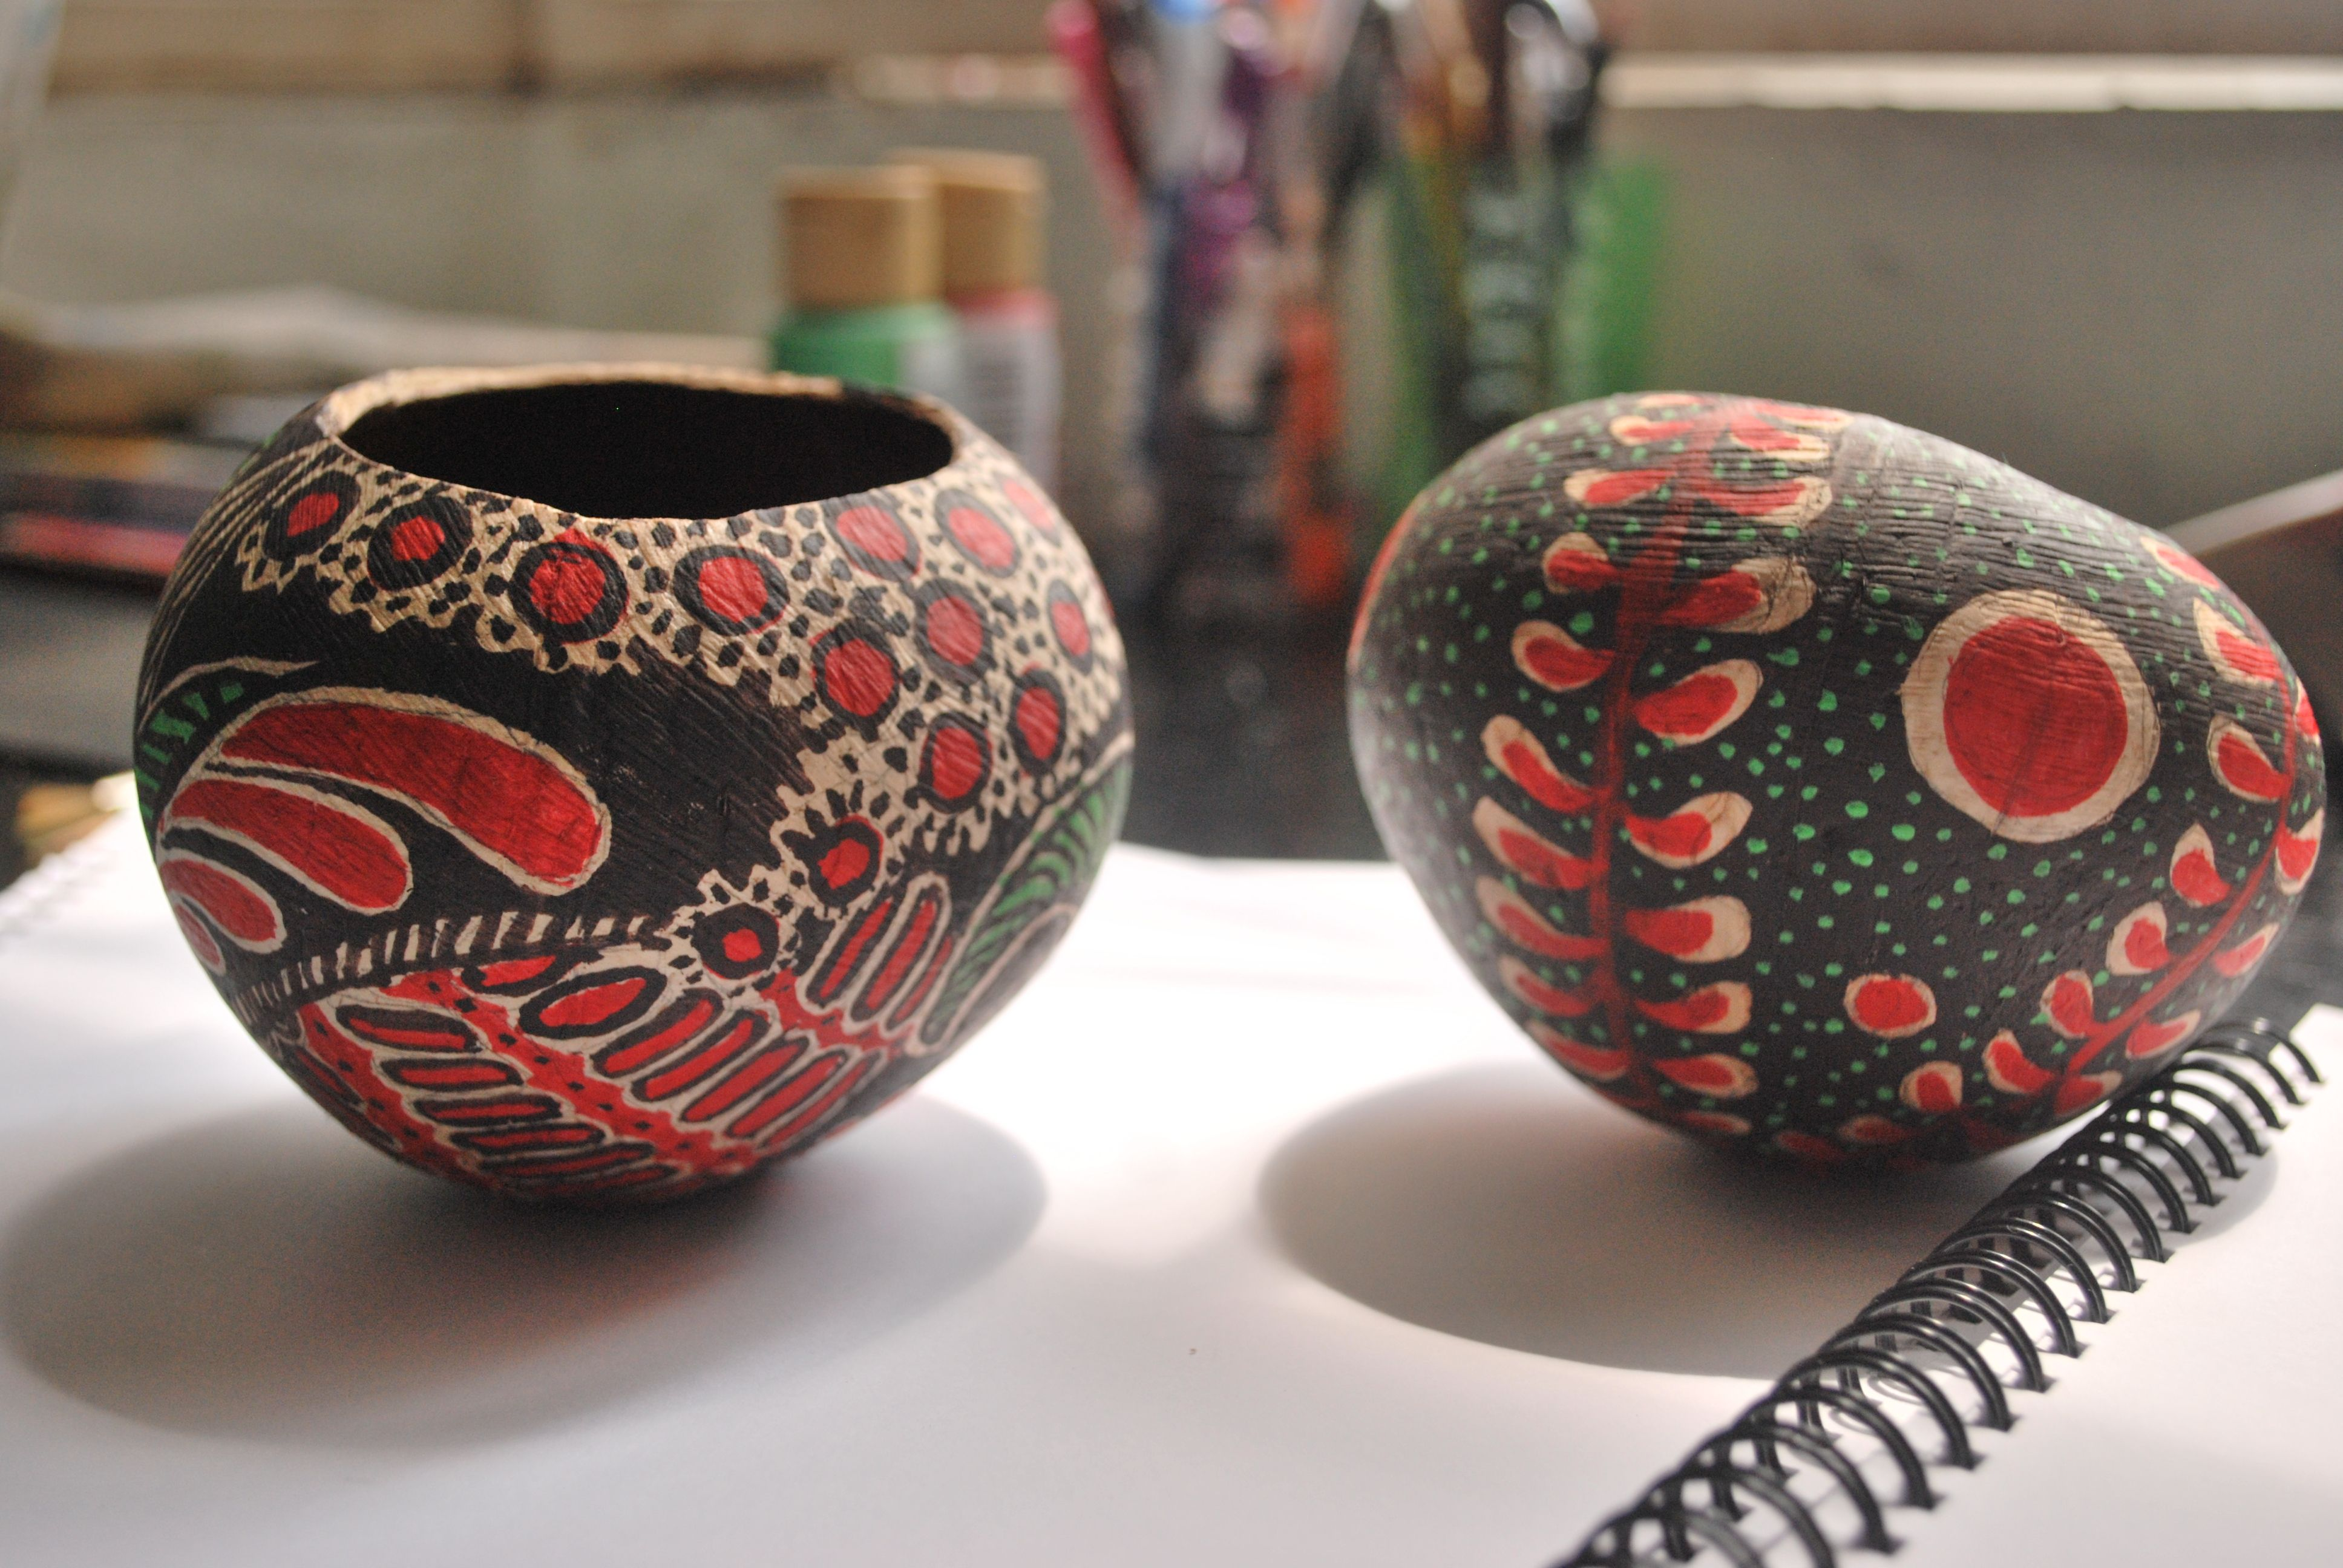 finally step 5...painted coconut shells :) | Shell crafts, Crafts, Coconut shell crafts